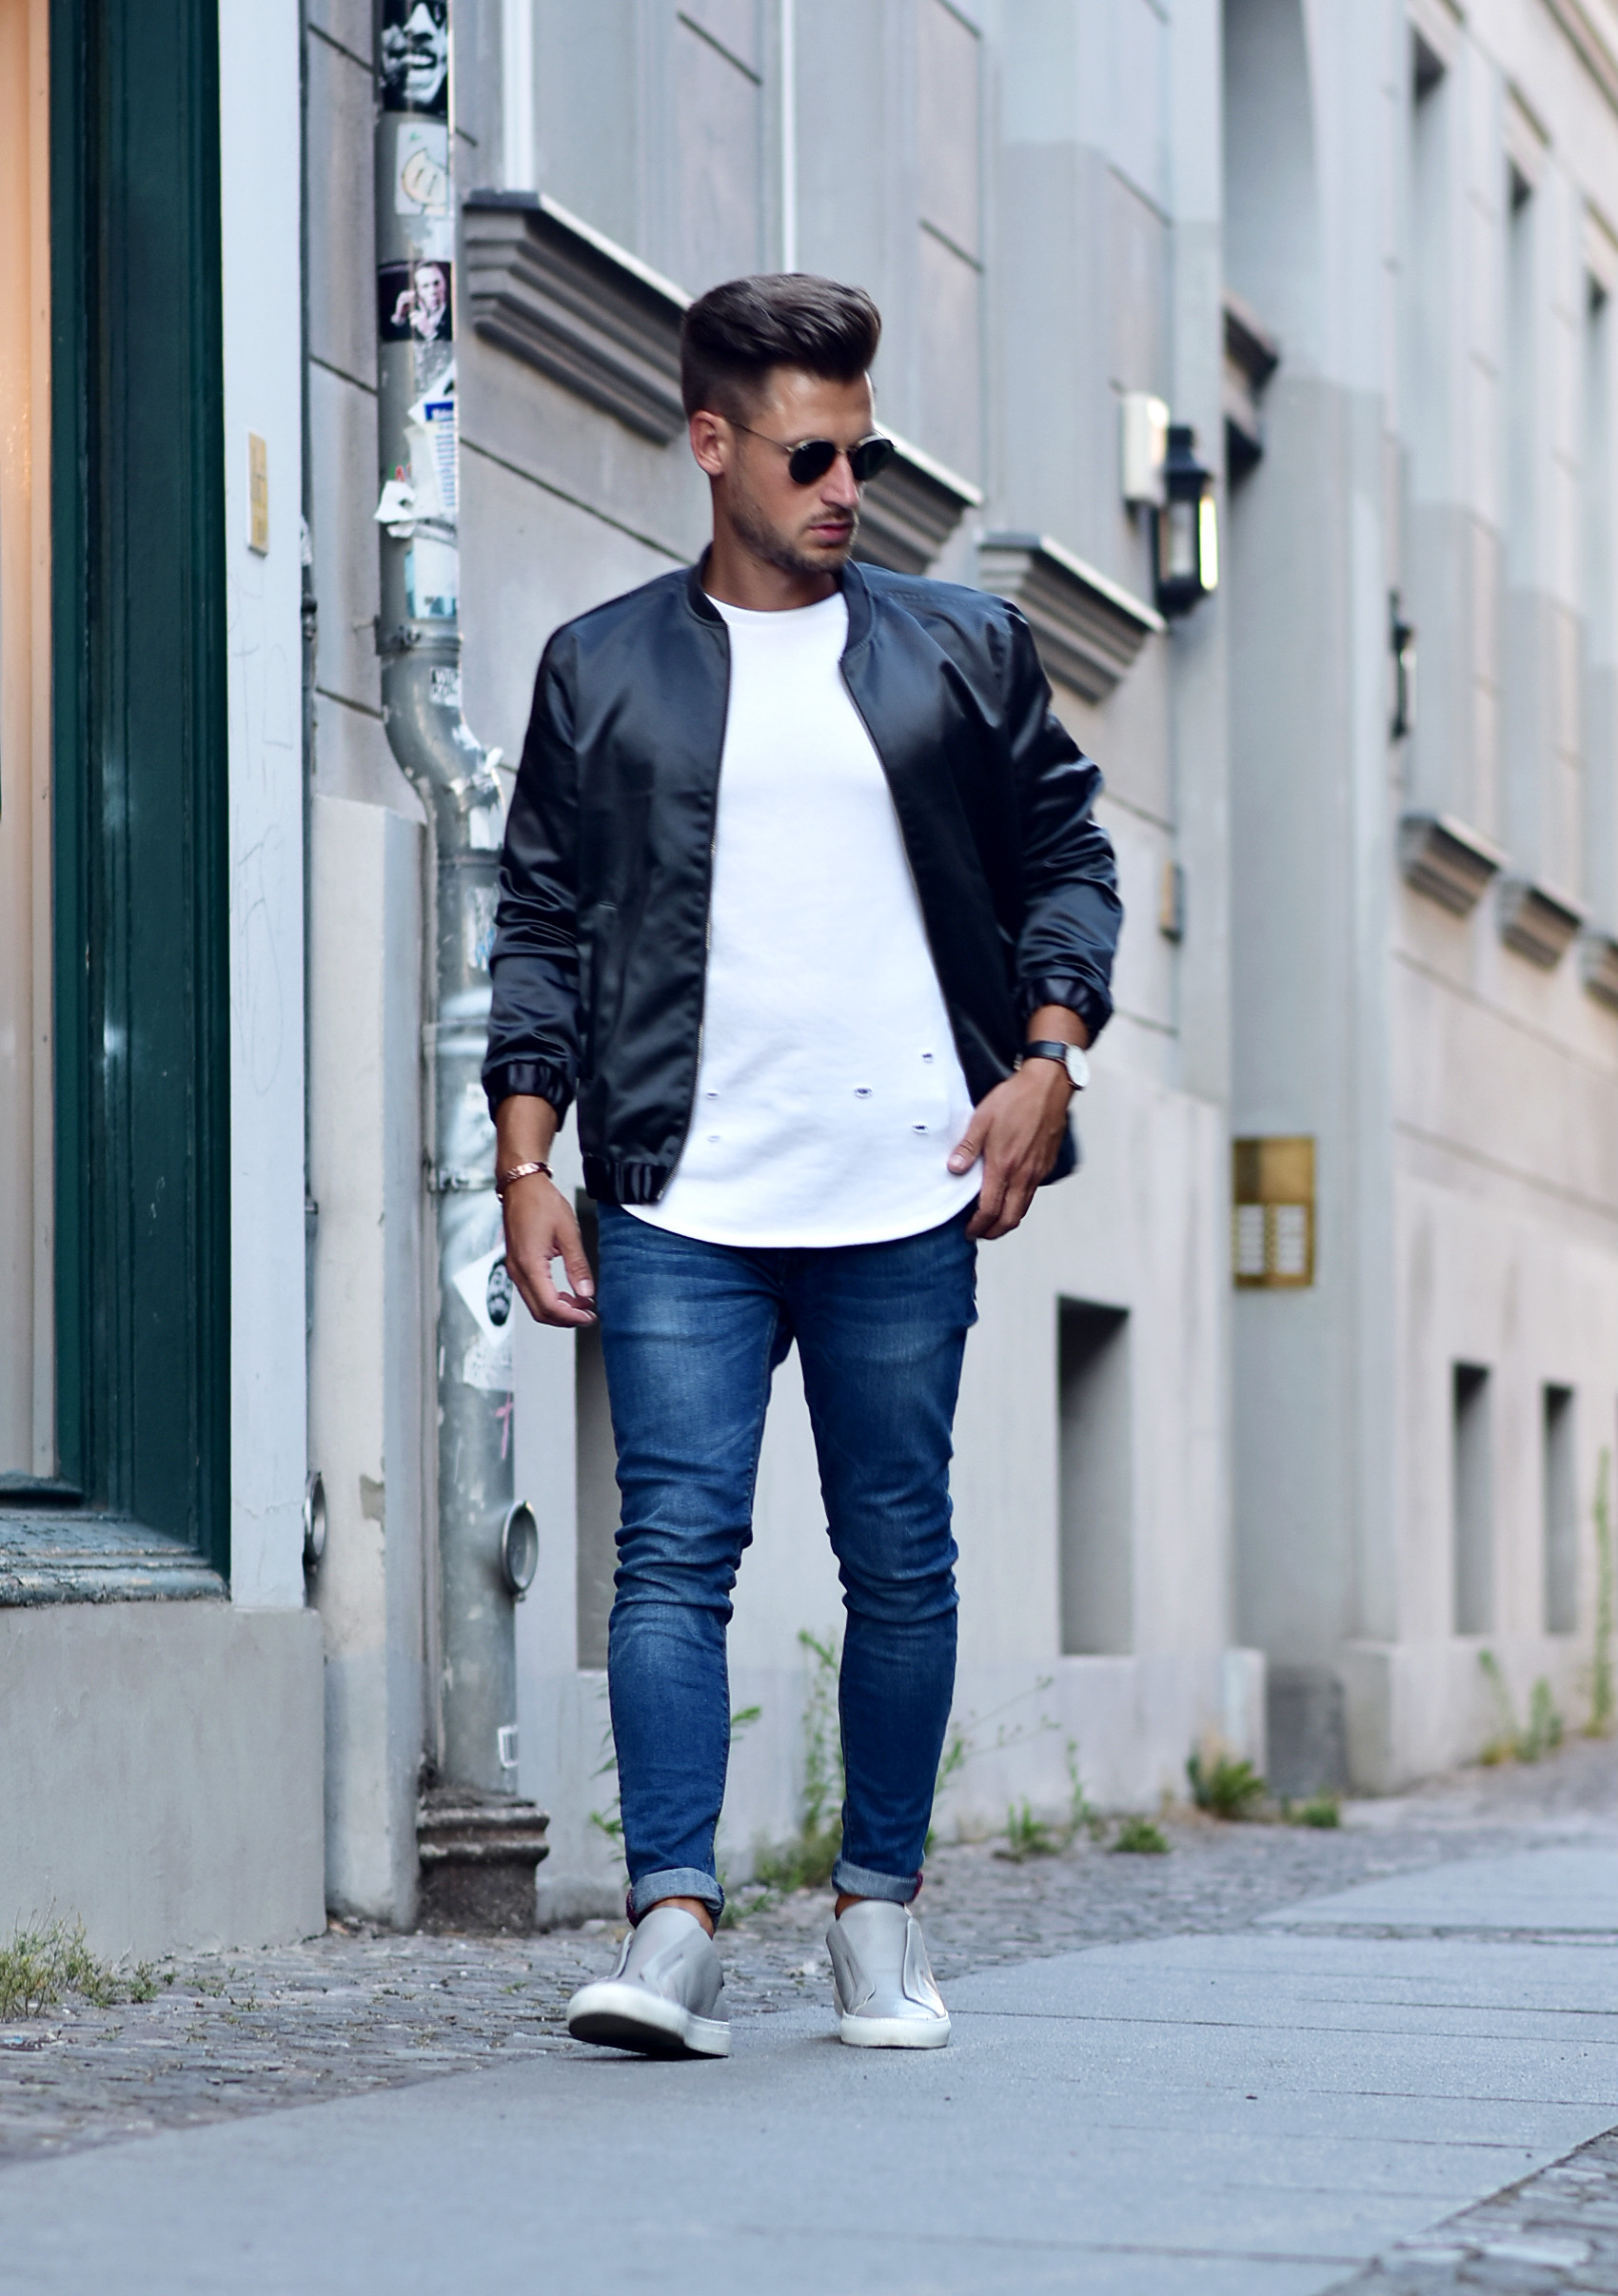 Männer Sommer Outfit Outfit Looks Der Fashionweek Berlin Sommer 2016